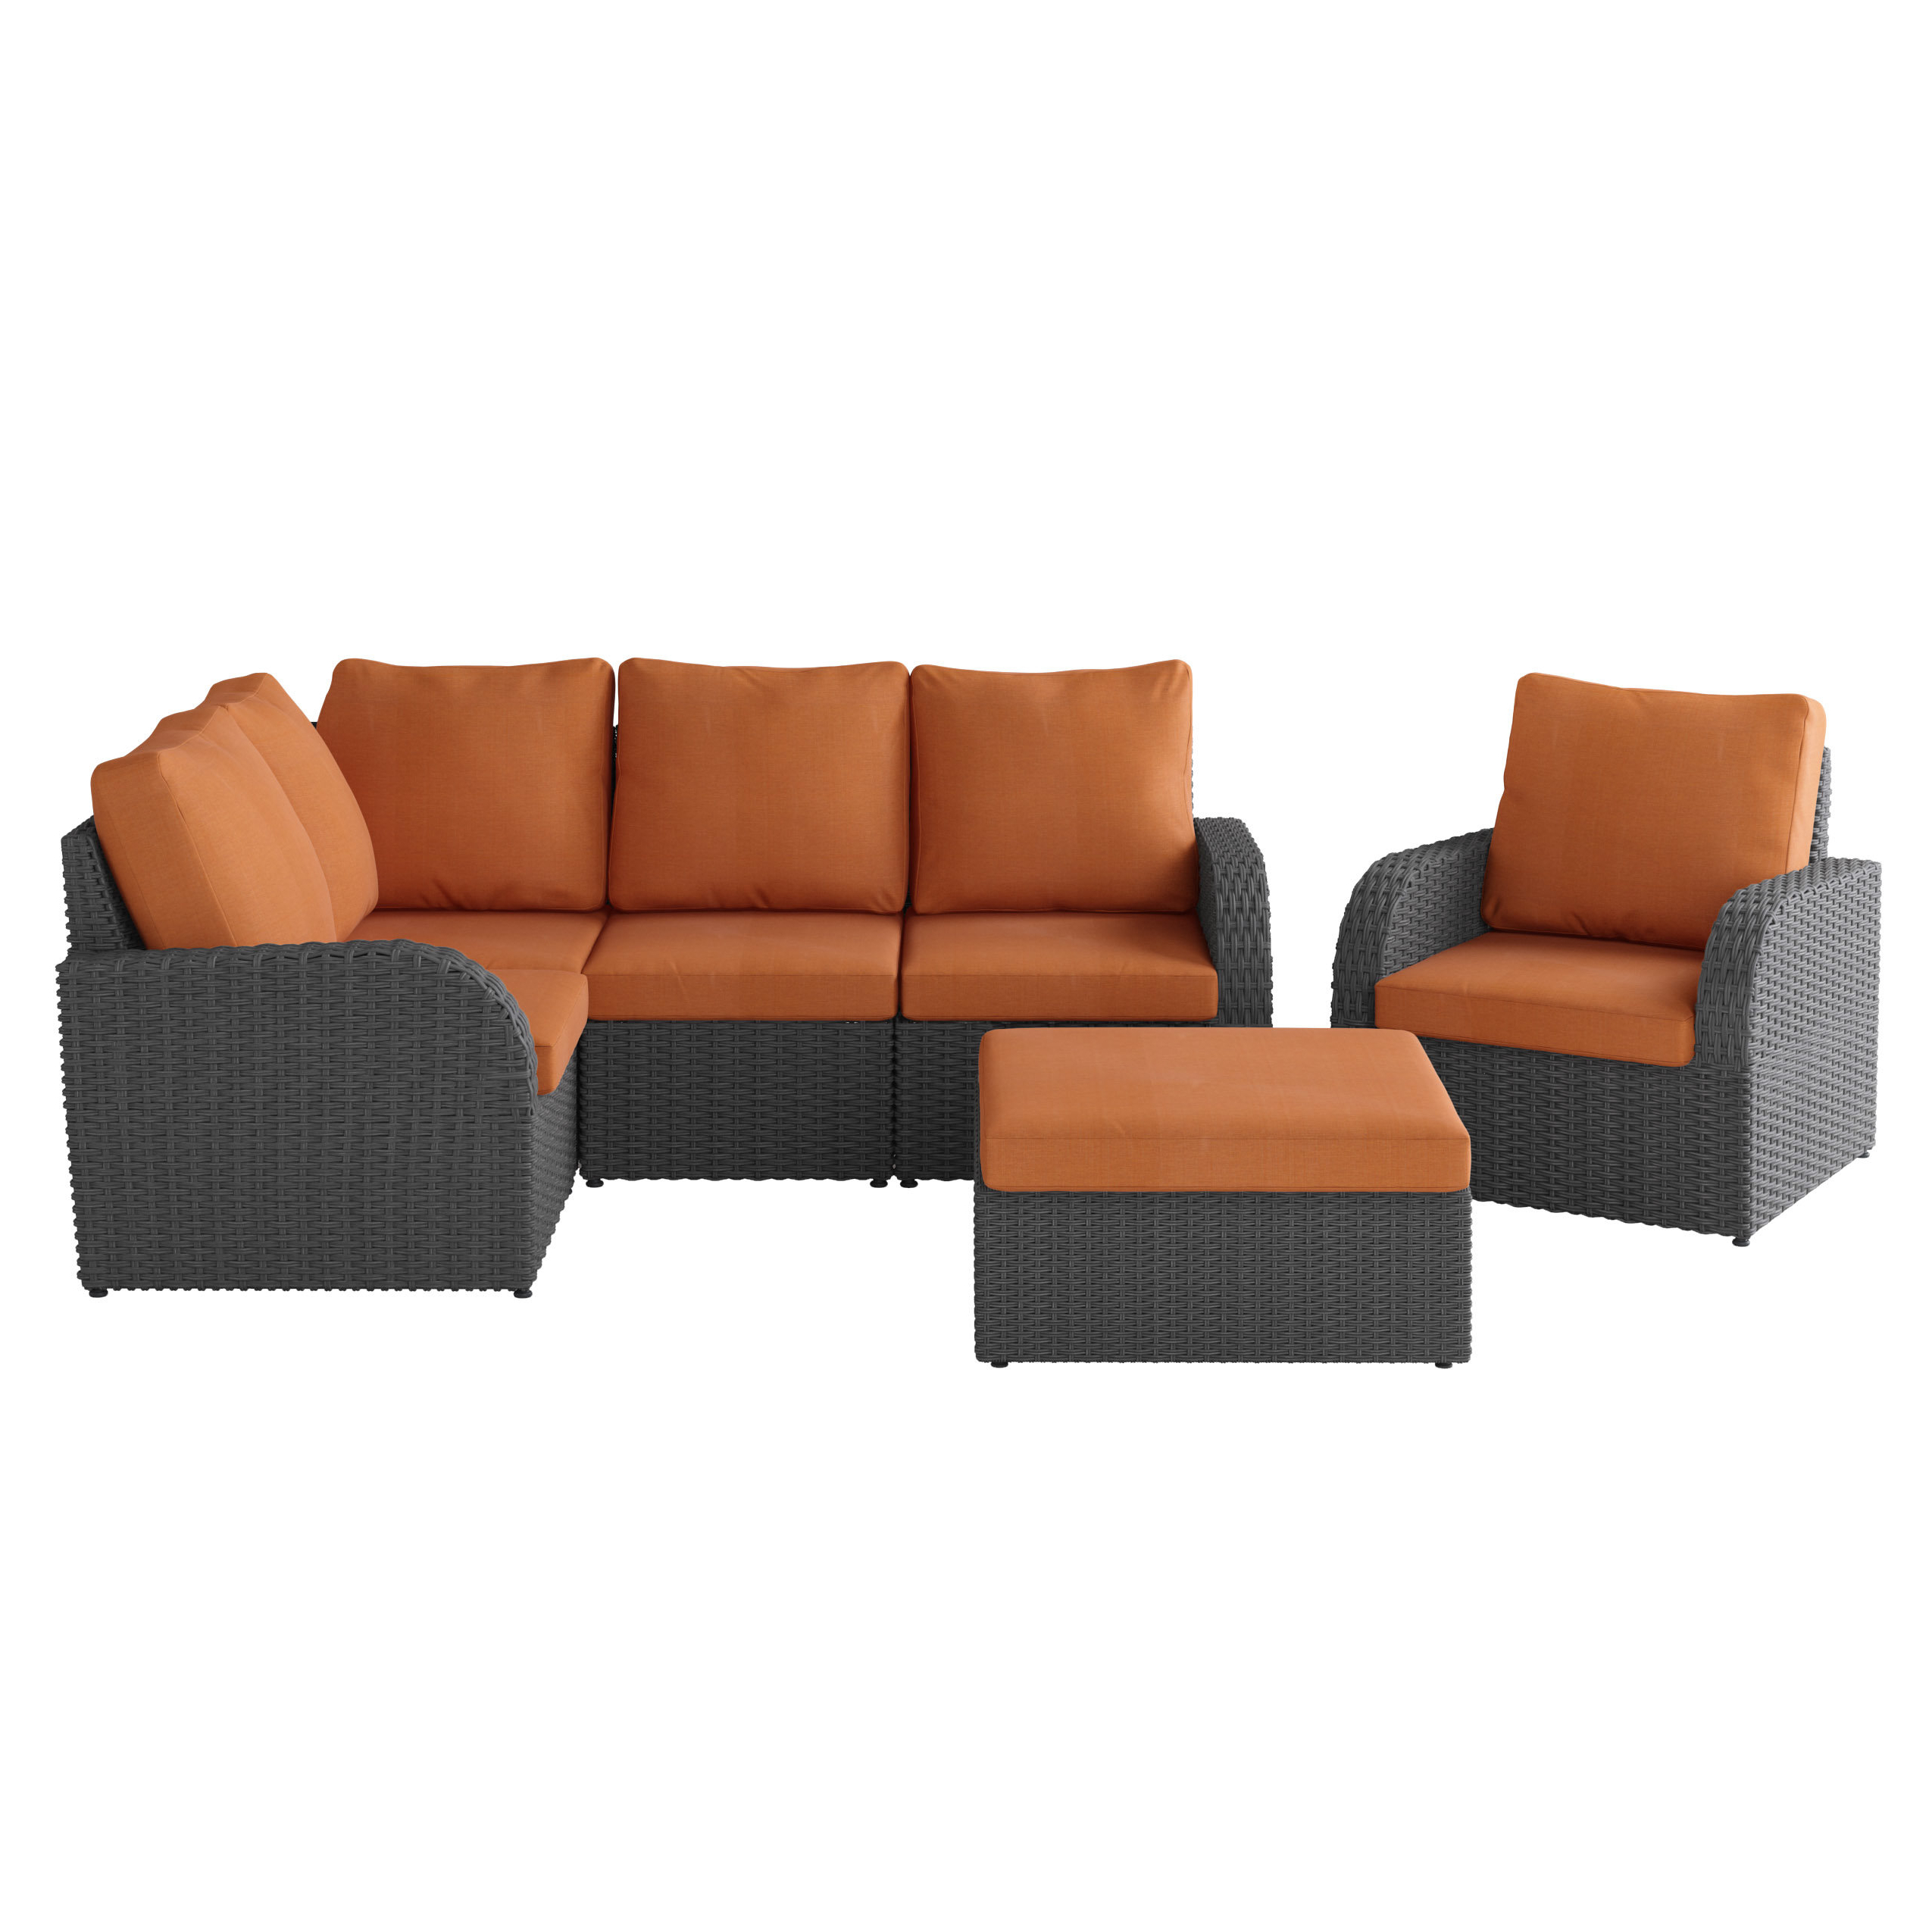 Killingworth Patio Sectional With Cushions Inside Well Known Jamarion 4 Piece Sectionals With Sunbrella Cushions (View 7 of 20)